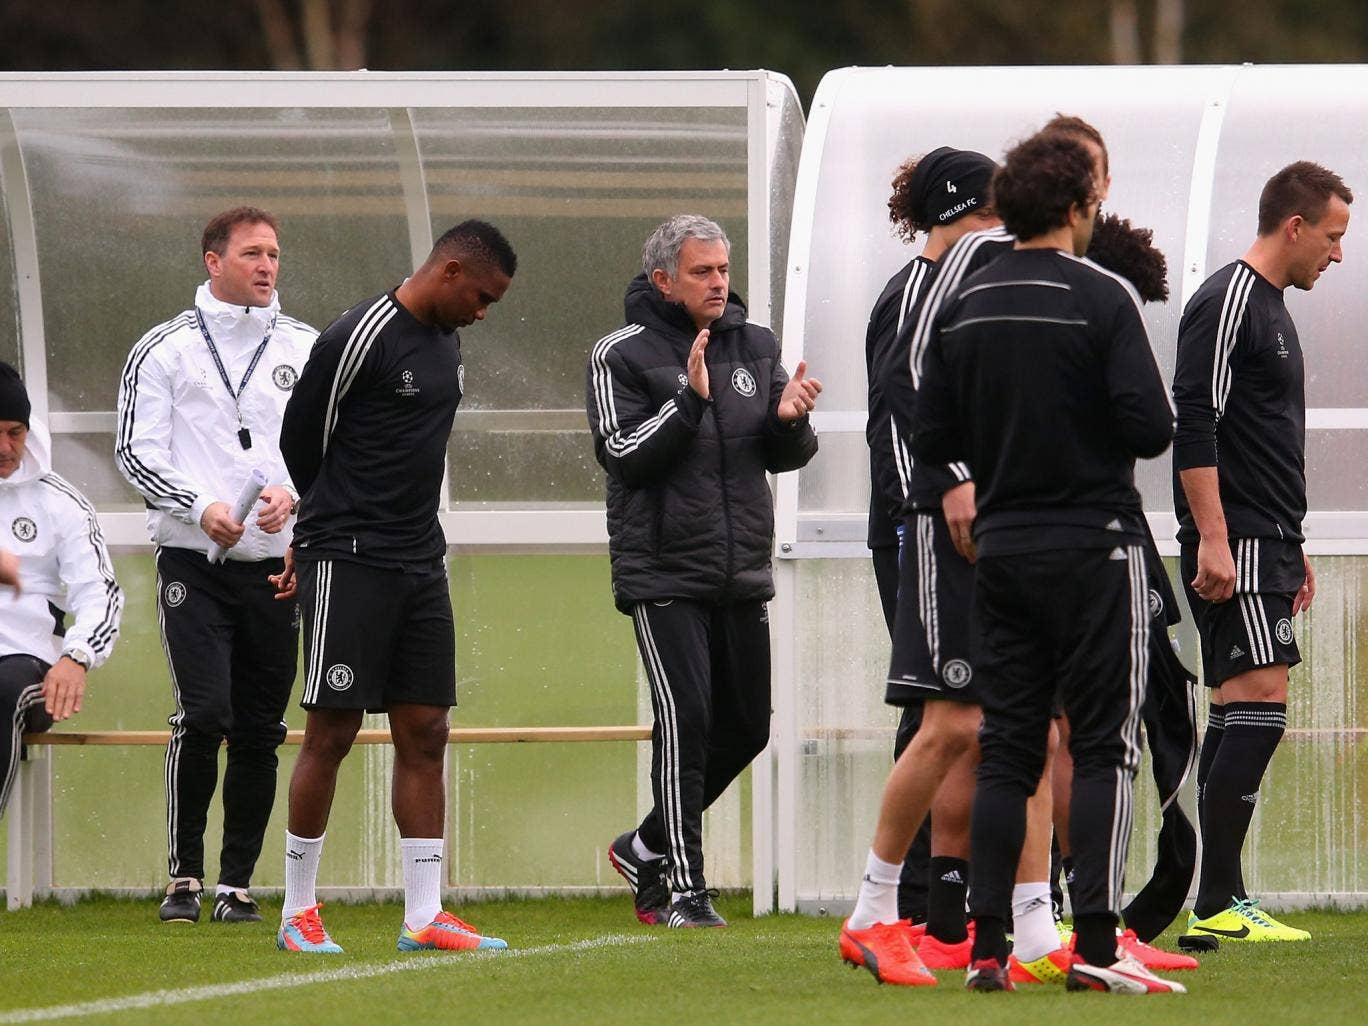 Jose Mourinho takes training with the Chelsea team ahead of their Champions League game against PSG